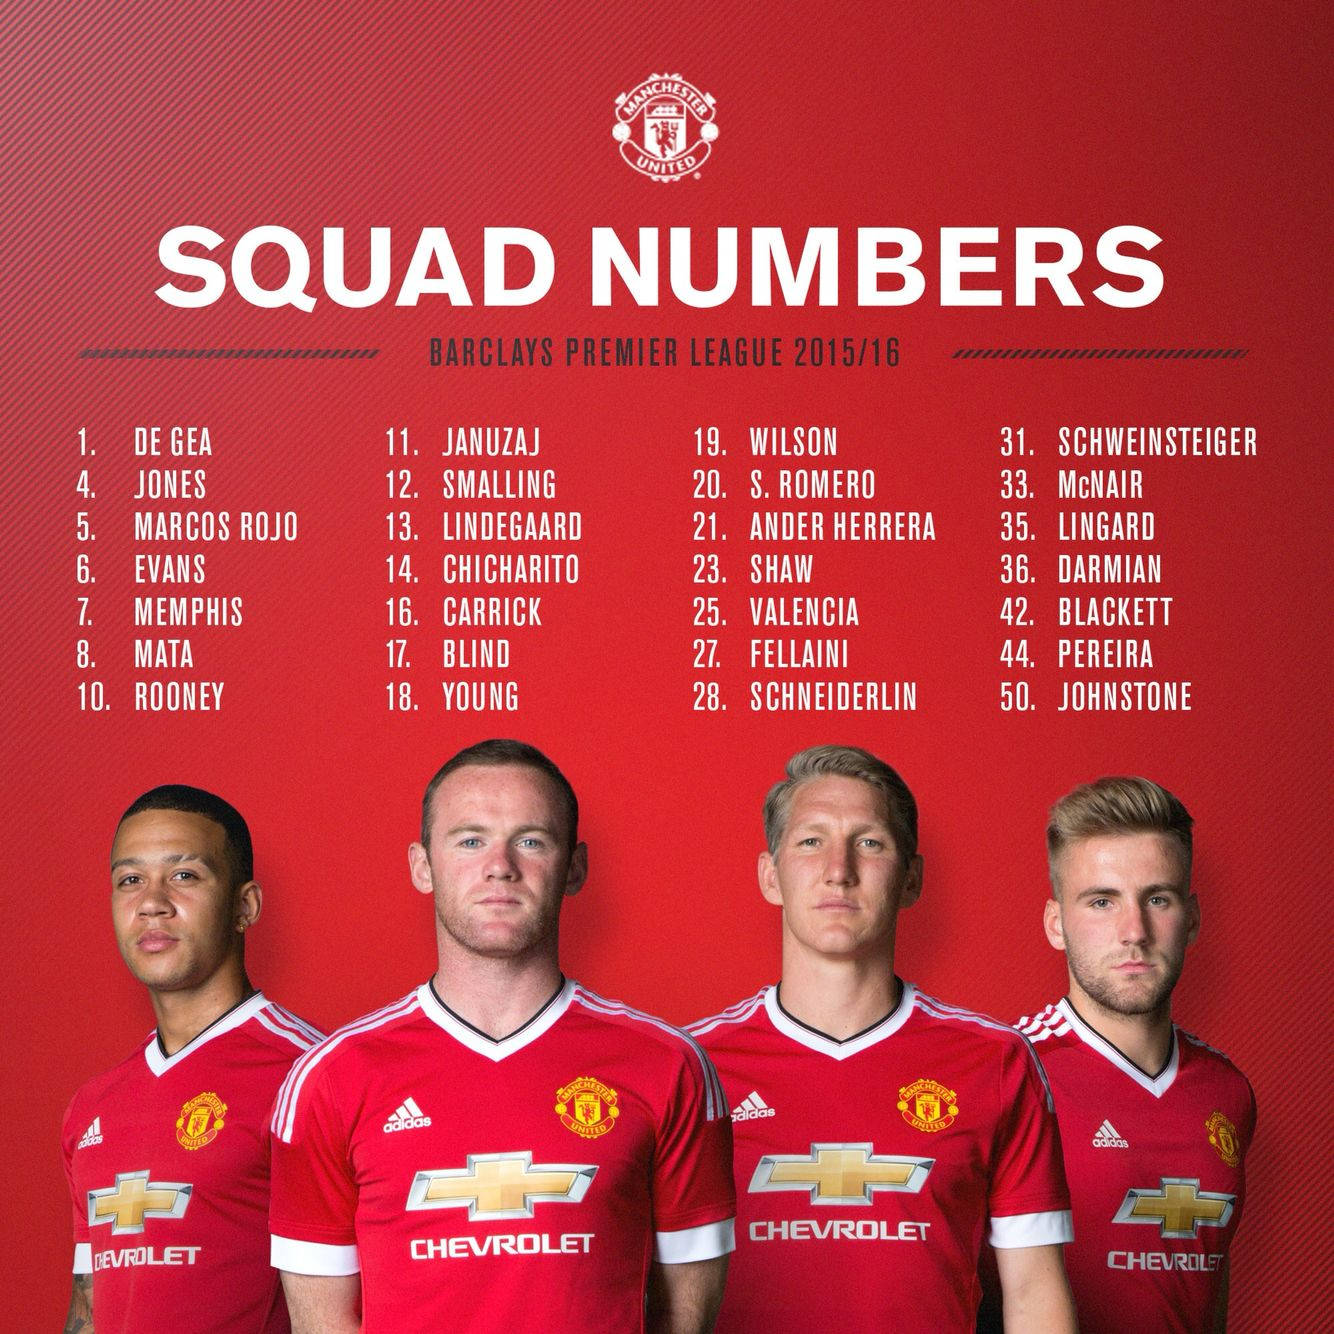 Manchester United squad numbers #redarmy | Manchester united, Manchester  united football club, Manchester united wallpaper